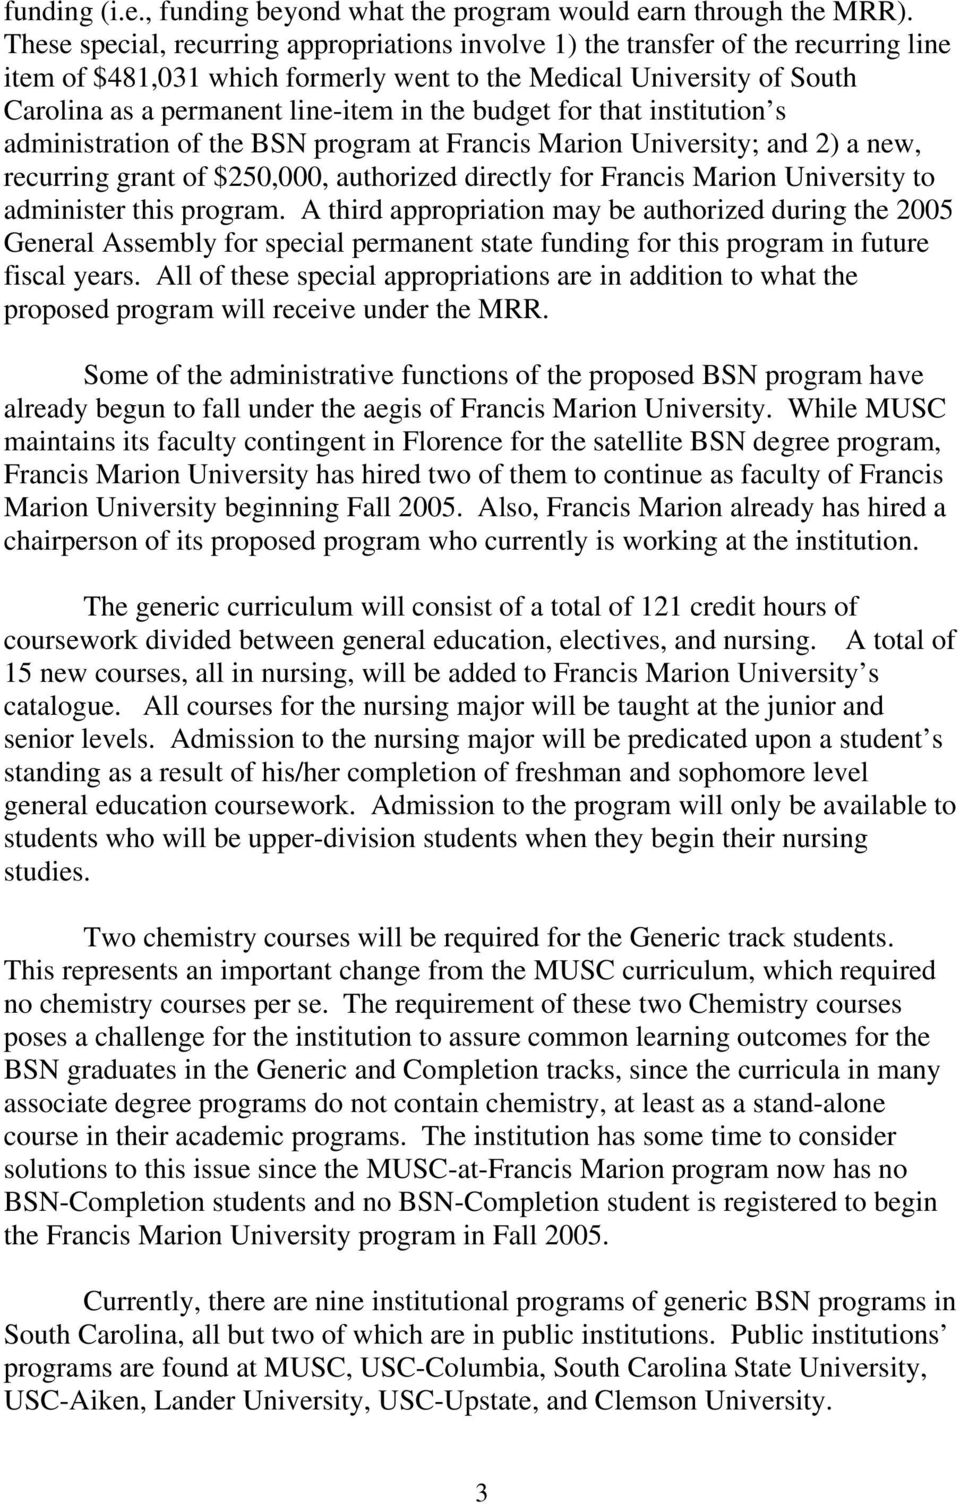 budget for that institution s administration of the BSN program at Francis Marion University; and 2) a new, recurring grant of $250,000, authorized directly for Francis Marion University to